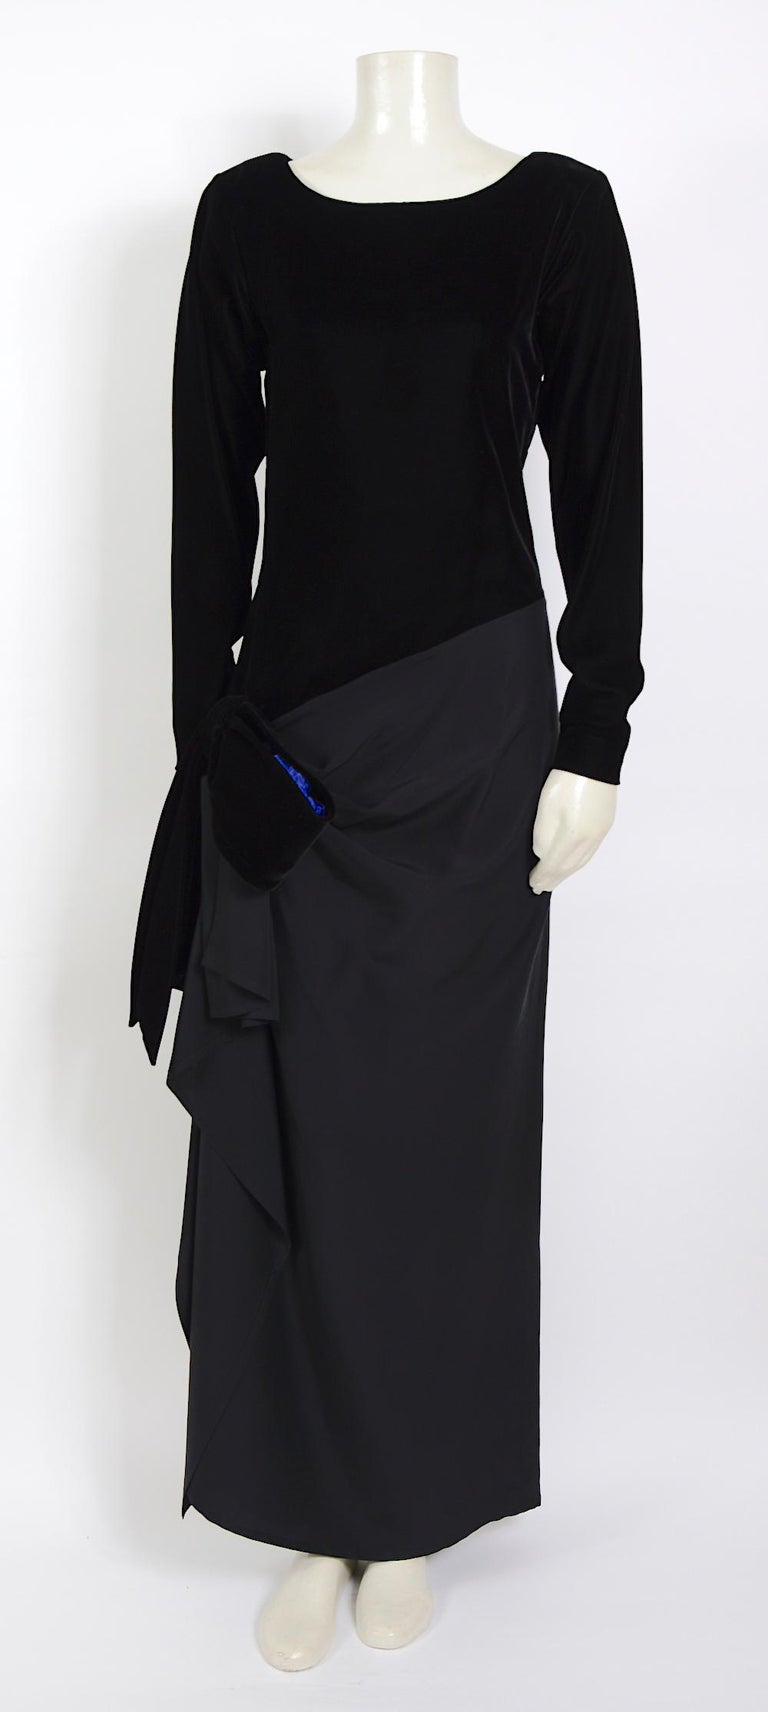 Yves Saint Laurent 1980s vintage black velvet and silk dress In Excellent Condition For Sale In Antwerp, BE